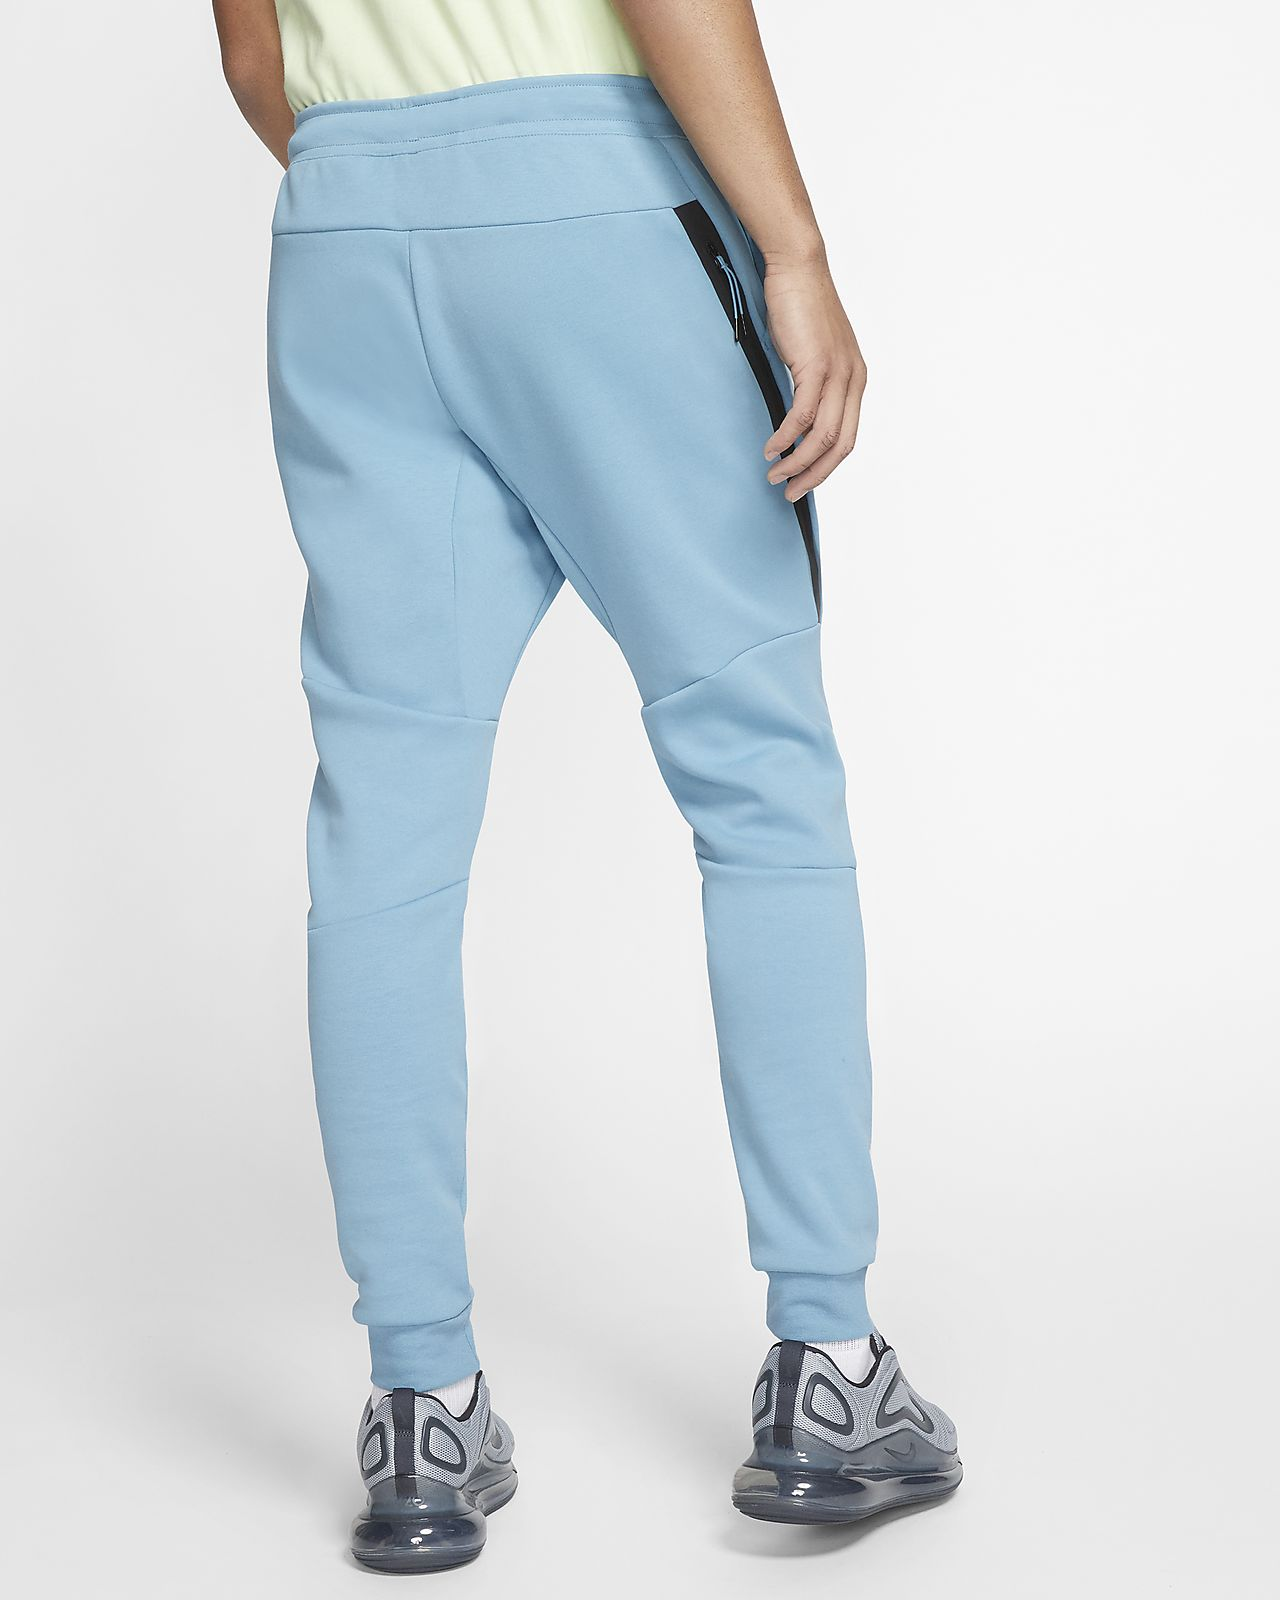 pantaloni nike uomo foot locker